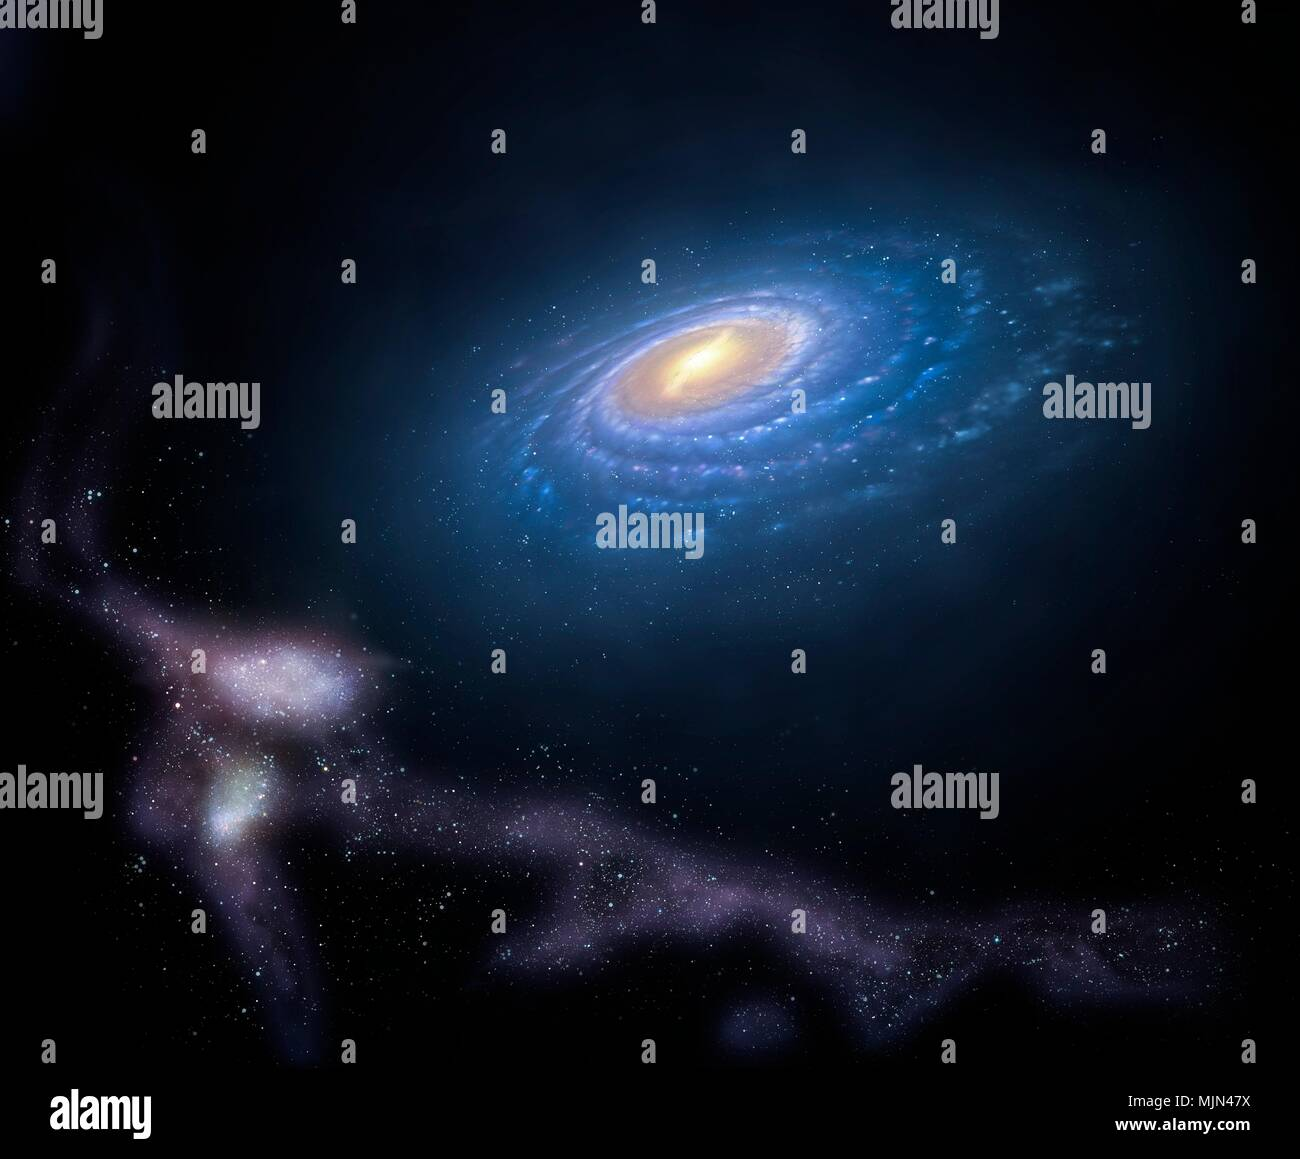 Illustration Of The Milky Way S So Called Magellanic Stream This Is A Stream Of Fast Moving Gas Clouds Orbiting Our Galaxy Associated With The Two Small Galaxies Called The Magellanic Clouds As These Galaxies